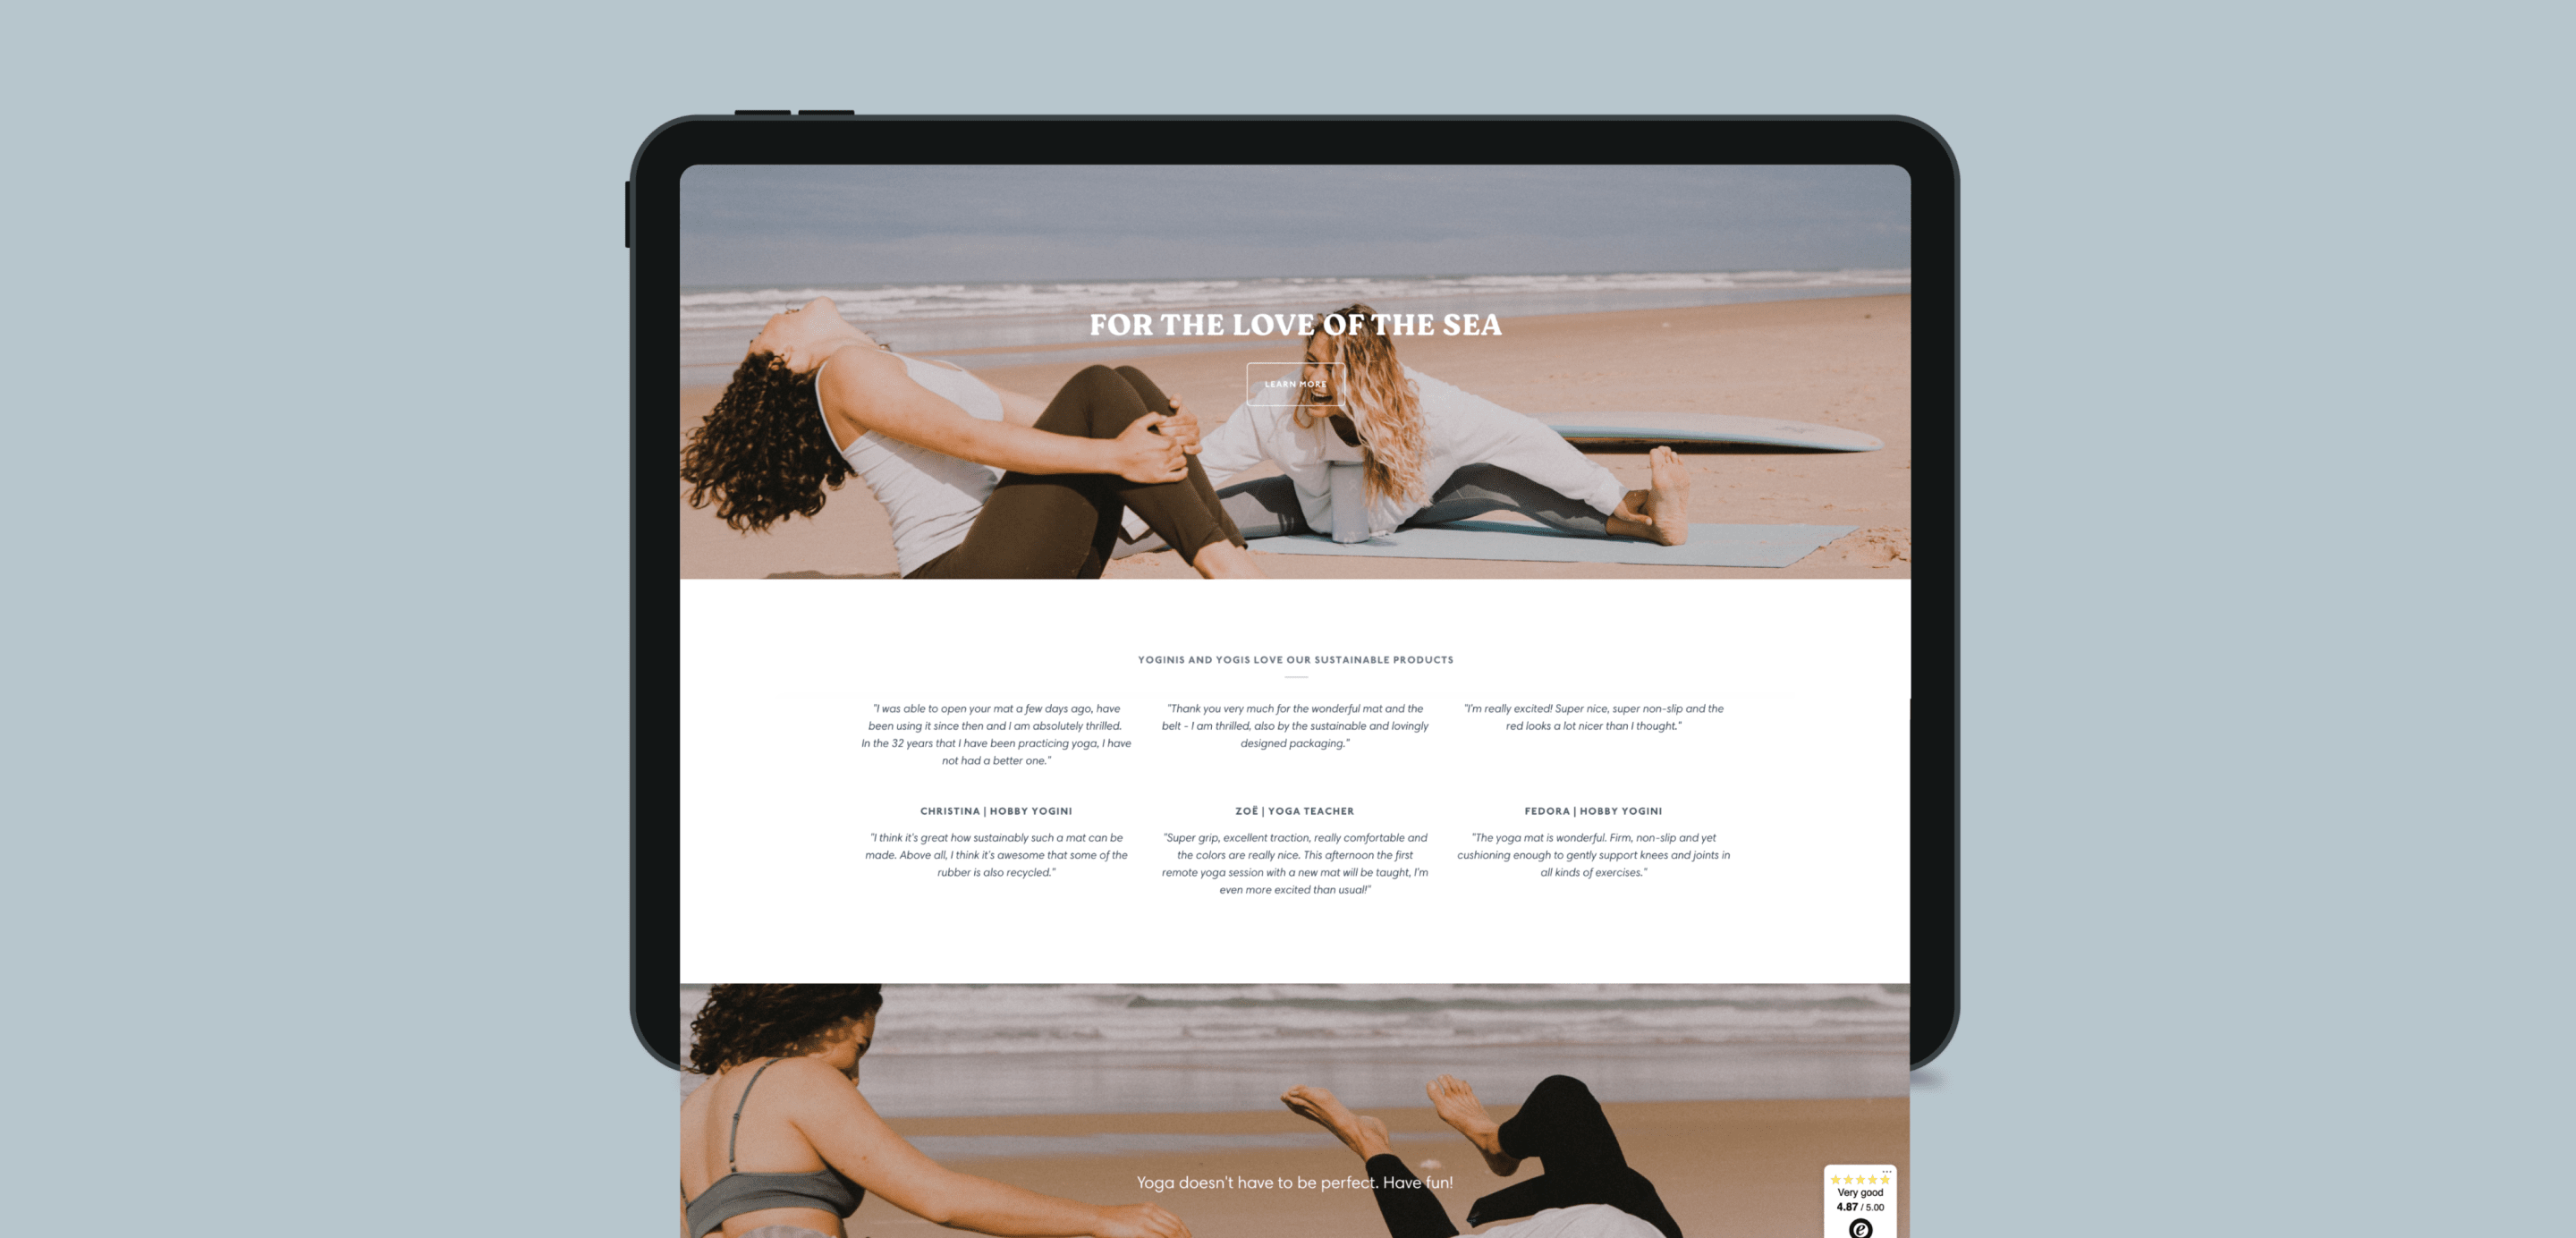 Capturing the yoga brand protecting our oceans